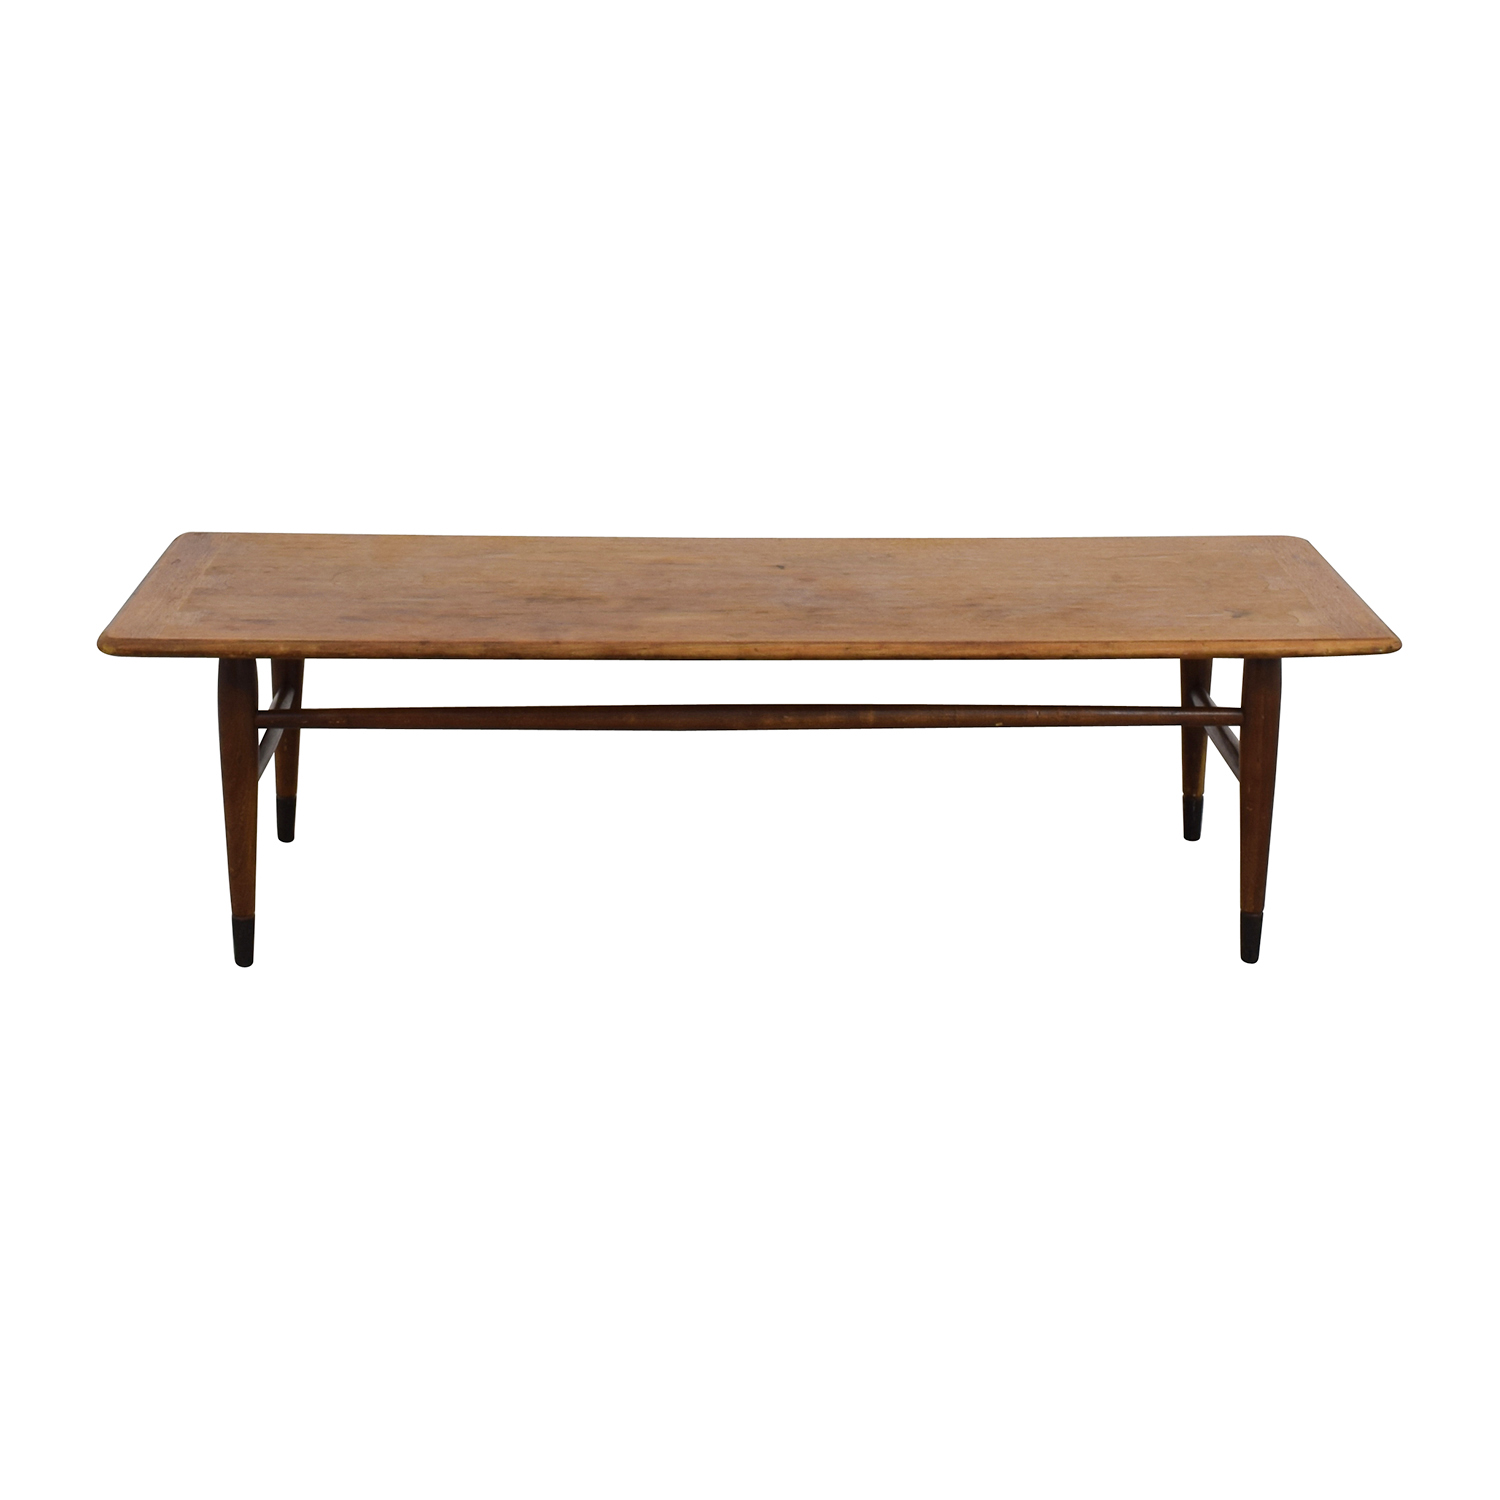 Mid Century Modern Coffee Table With Planter: IKEA String Coffee Table With Casters / Tables